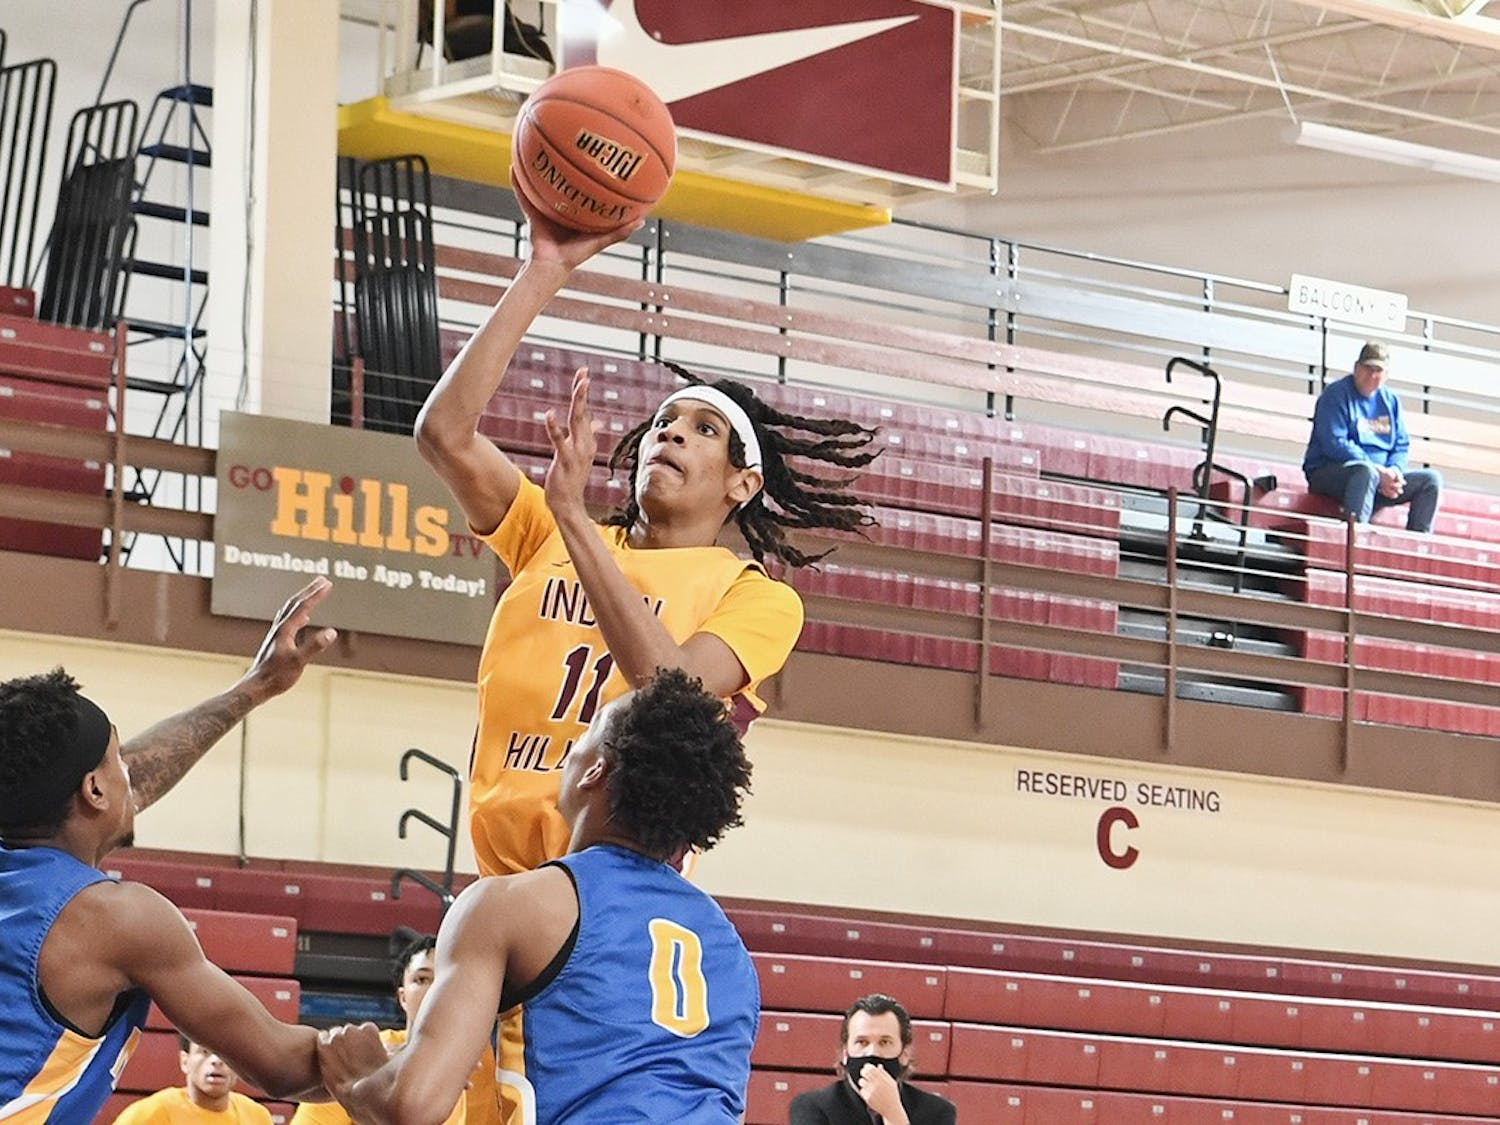 Due to a blanket waiver passed by the NJCAA in the fall in response to the COVID-19 pandemic, Curtis Jones will still have four years of eligibility remaining starting next season.